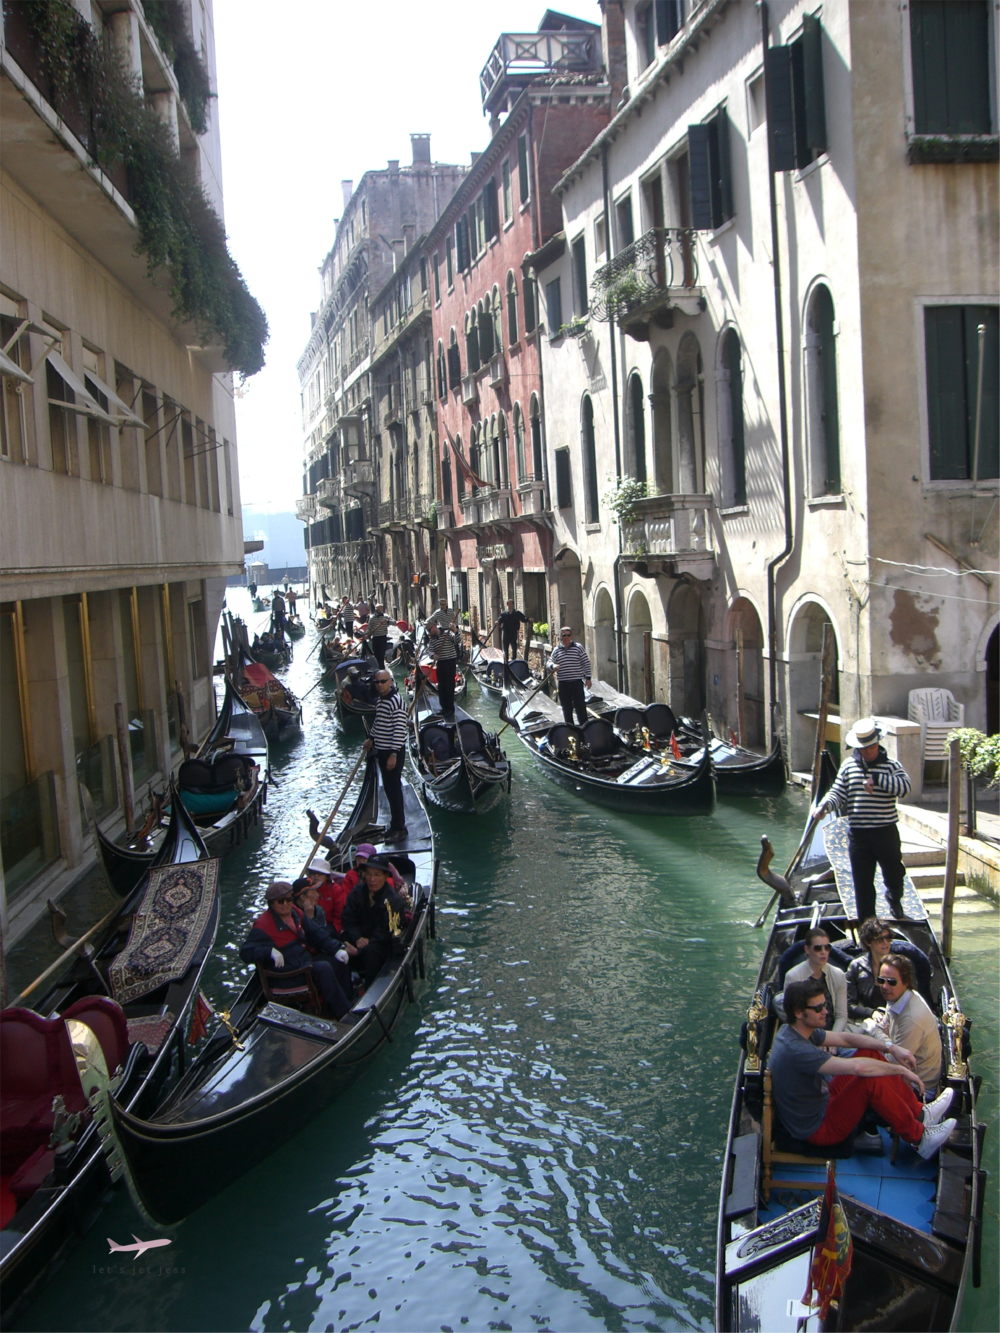 Crowded canals in Venice